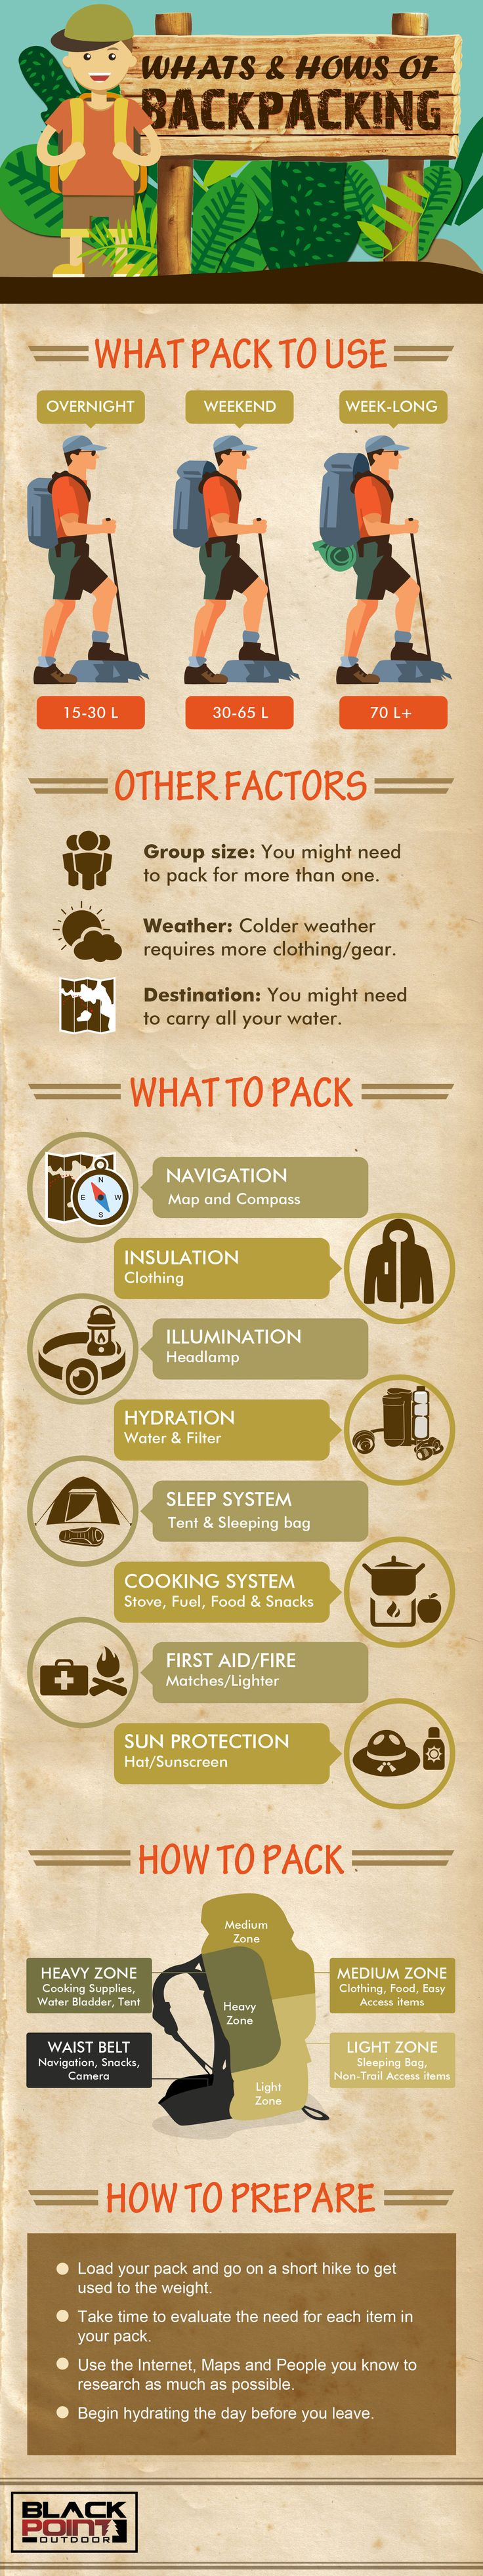 Backpacking Infographic, the Whats and Hows of Backpacking